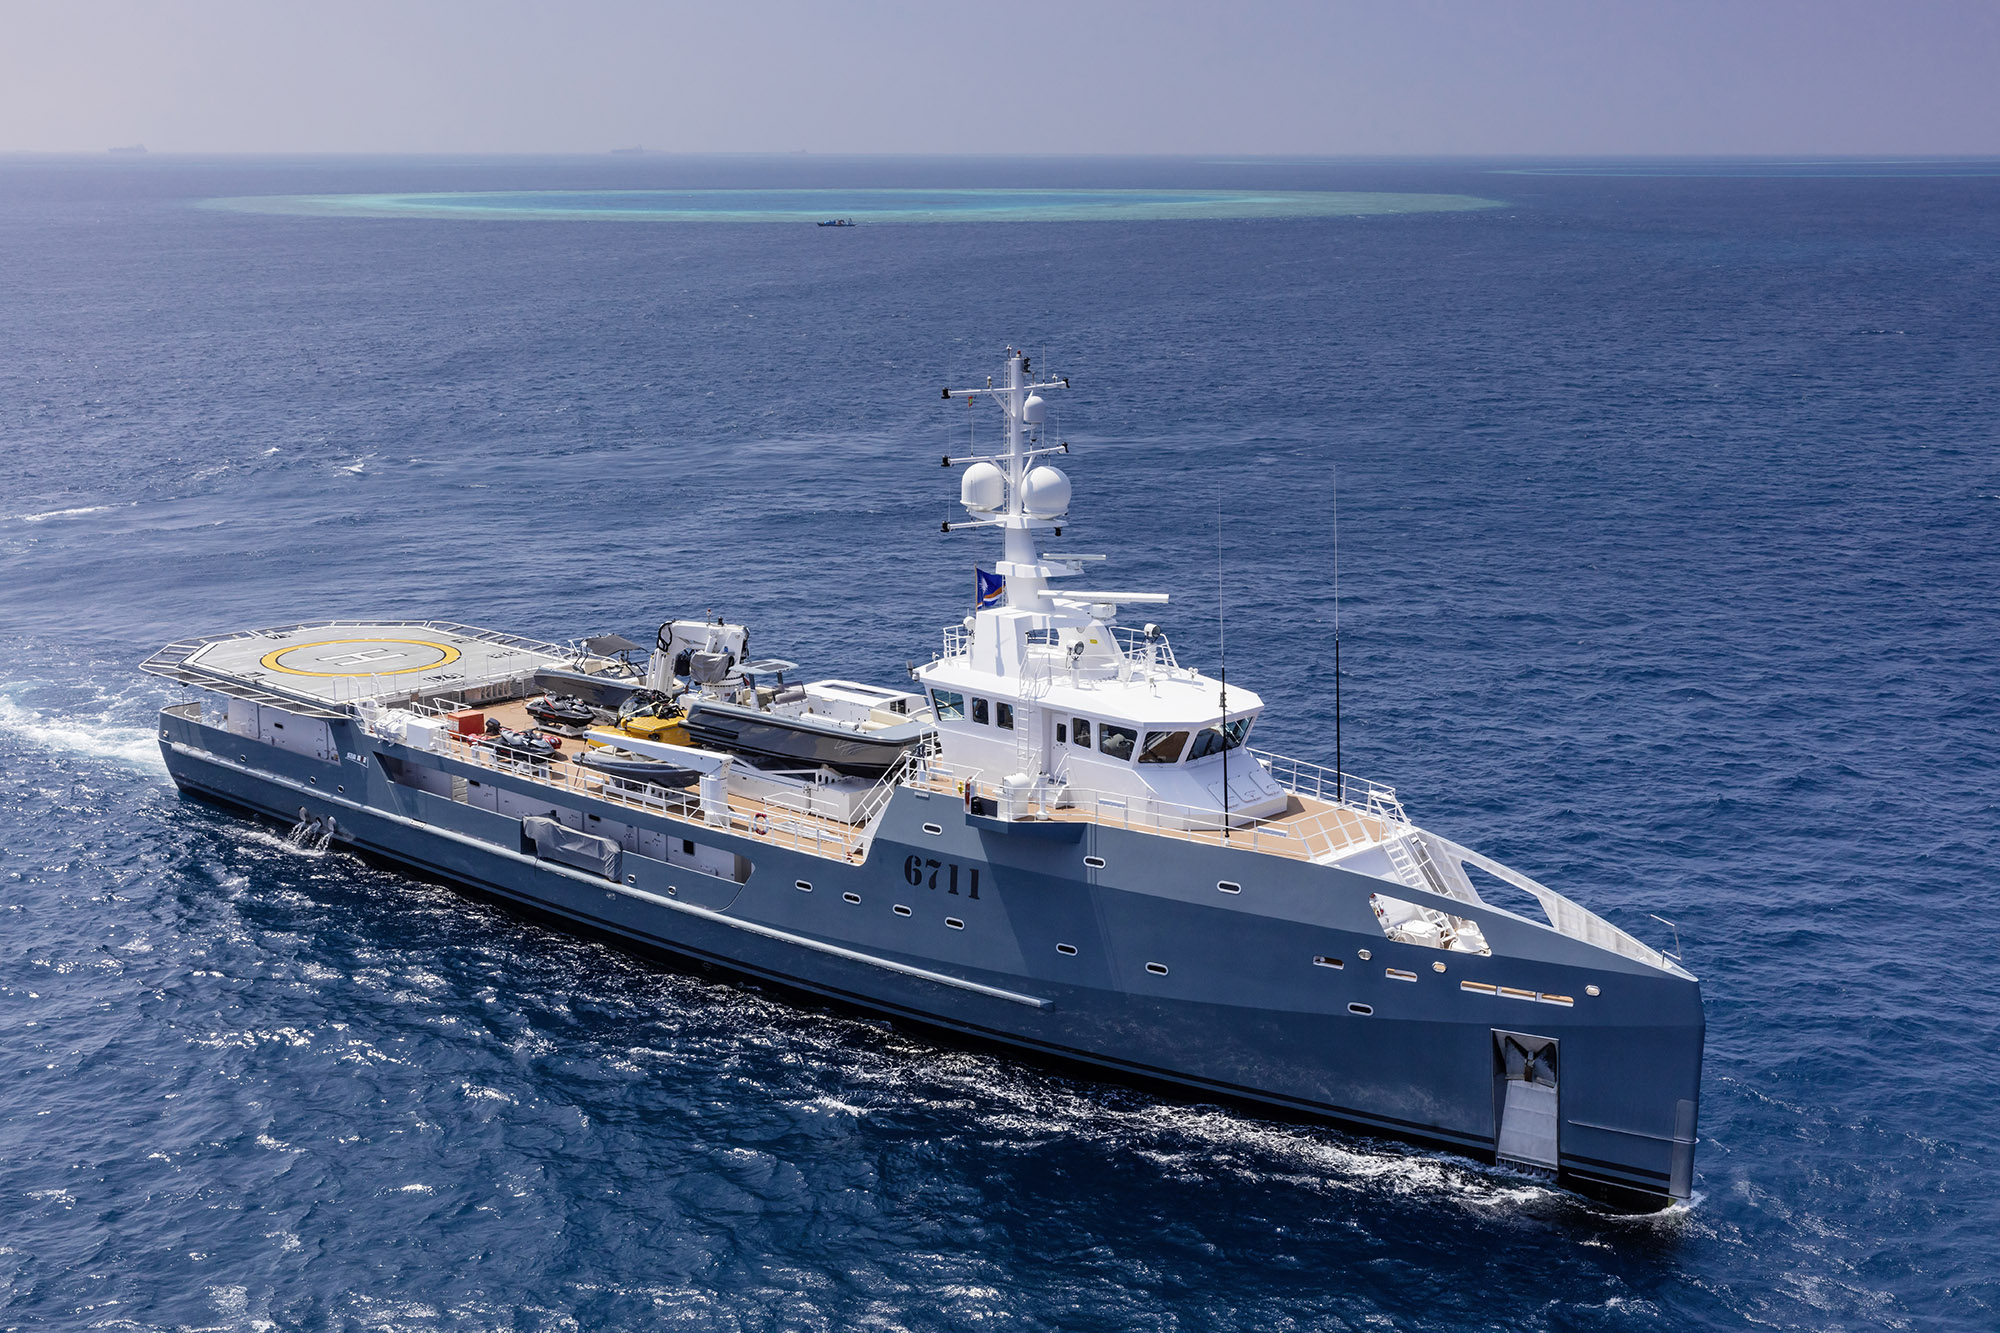 Fast Support Vessel 6711 specs with detailed specification and builder summary